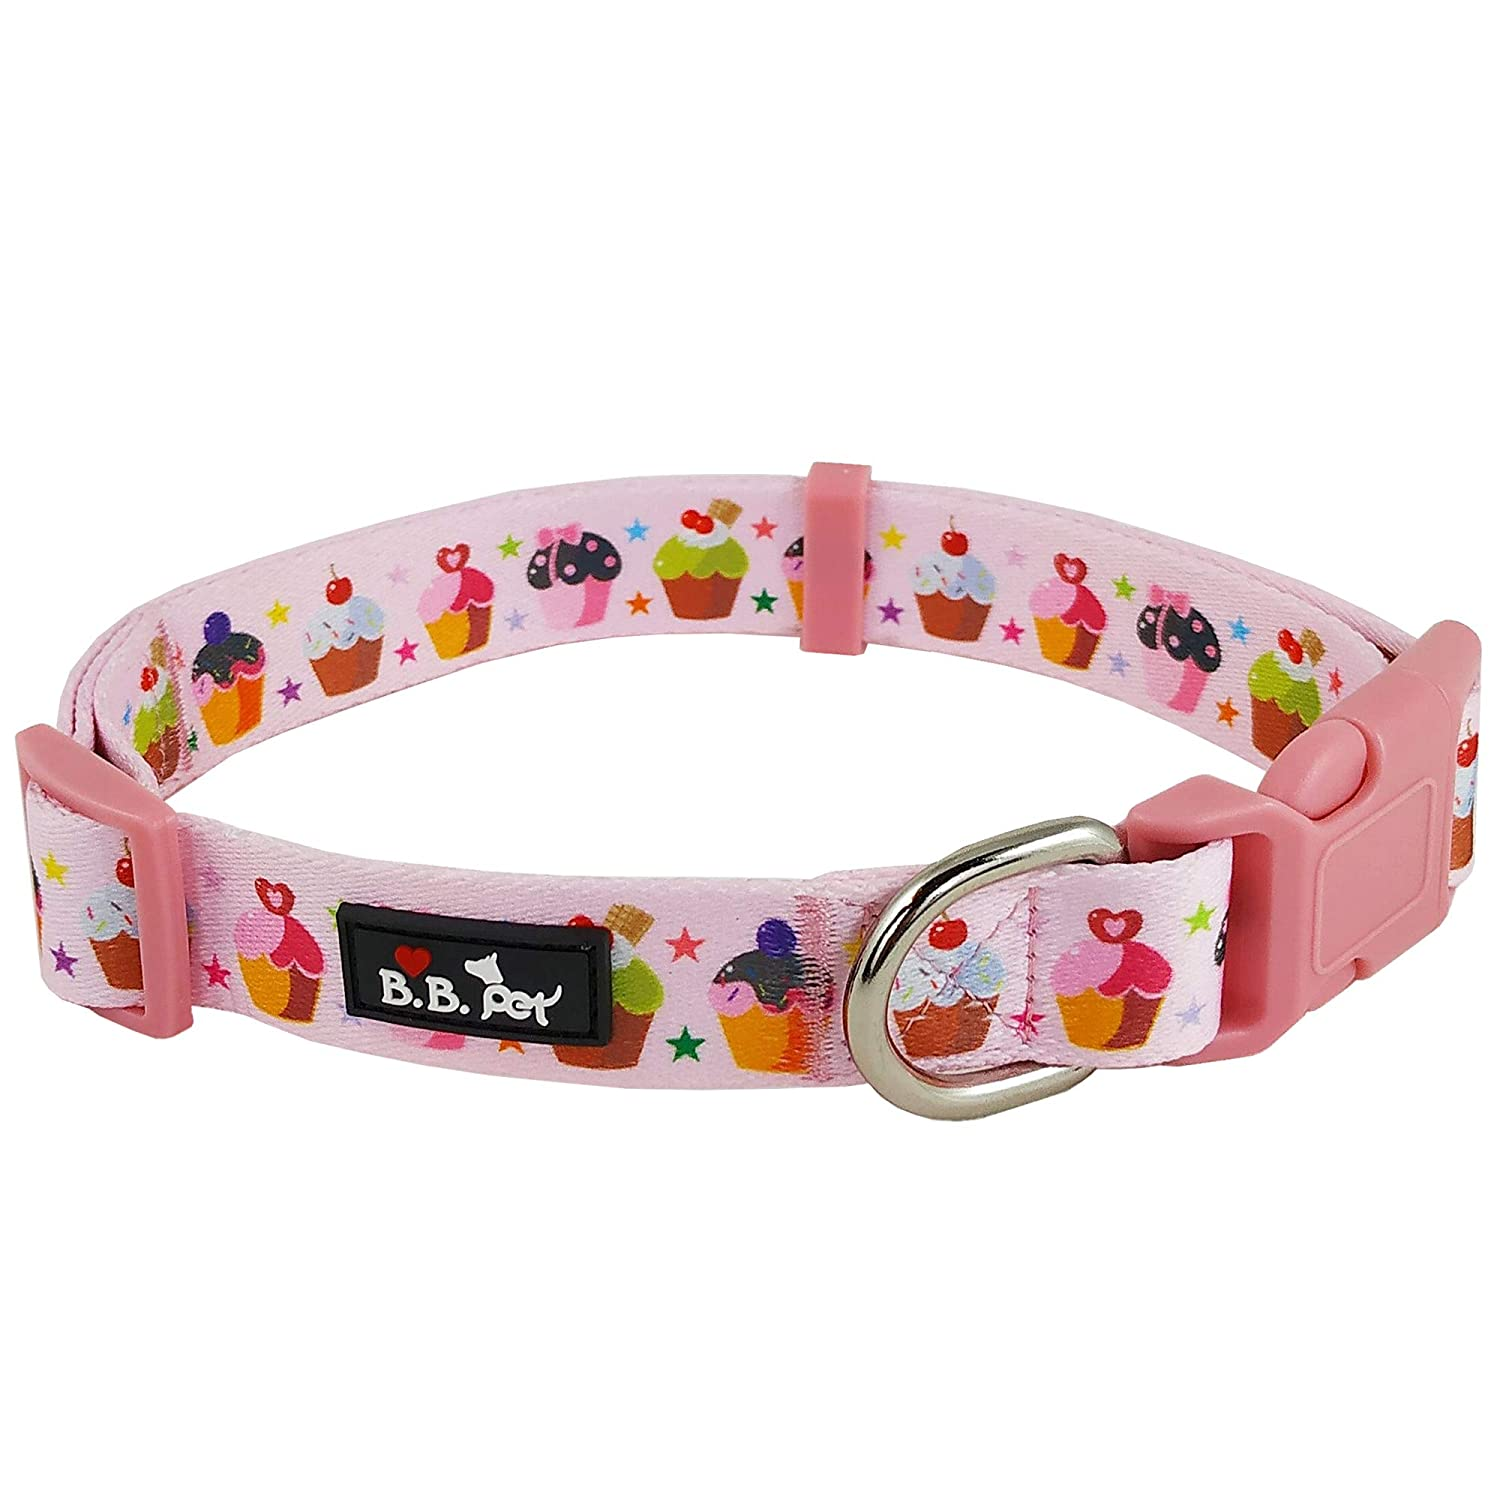 11\ Bestbuddy Pet colorful Cupcakes Pink Durable Nylon Designer Fashion Dog Collar Trendy Comfortable Adjustable Dog Collar with Buckle BBP026